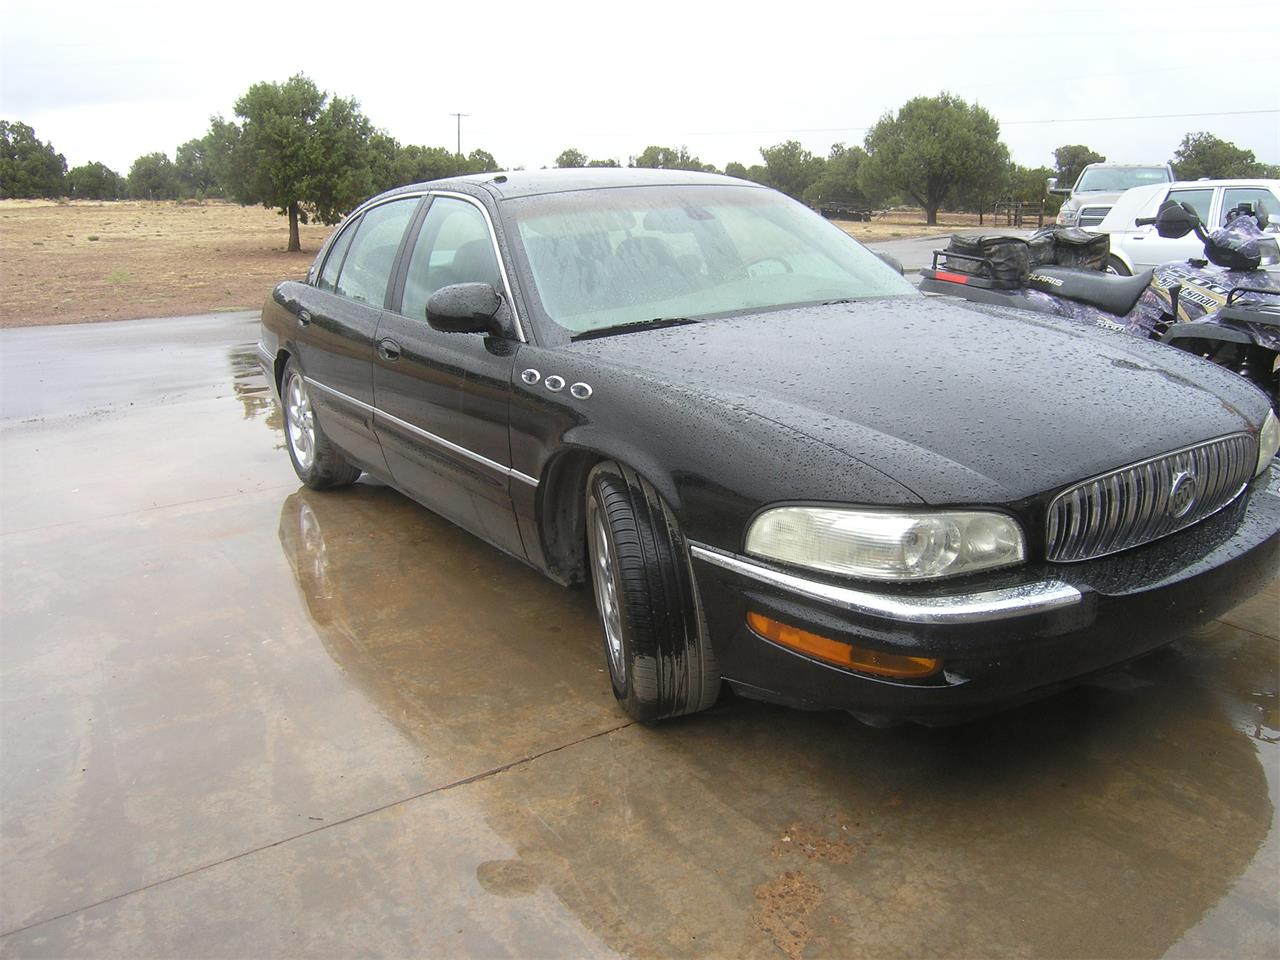 2005 Buick Park Avenue (CC-1133602) for sale in Show Low, Arizona